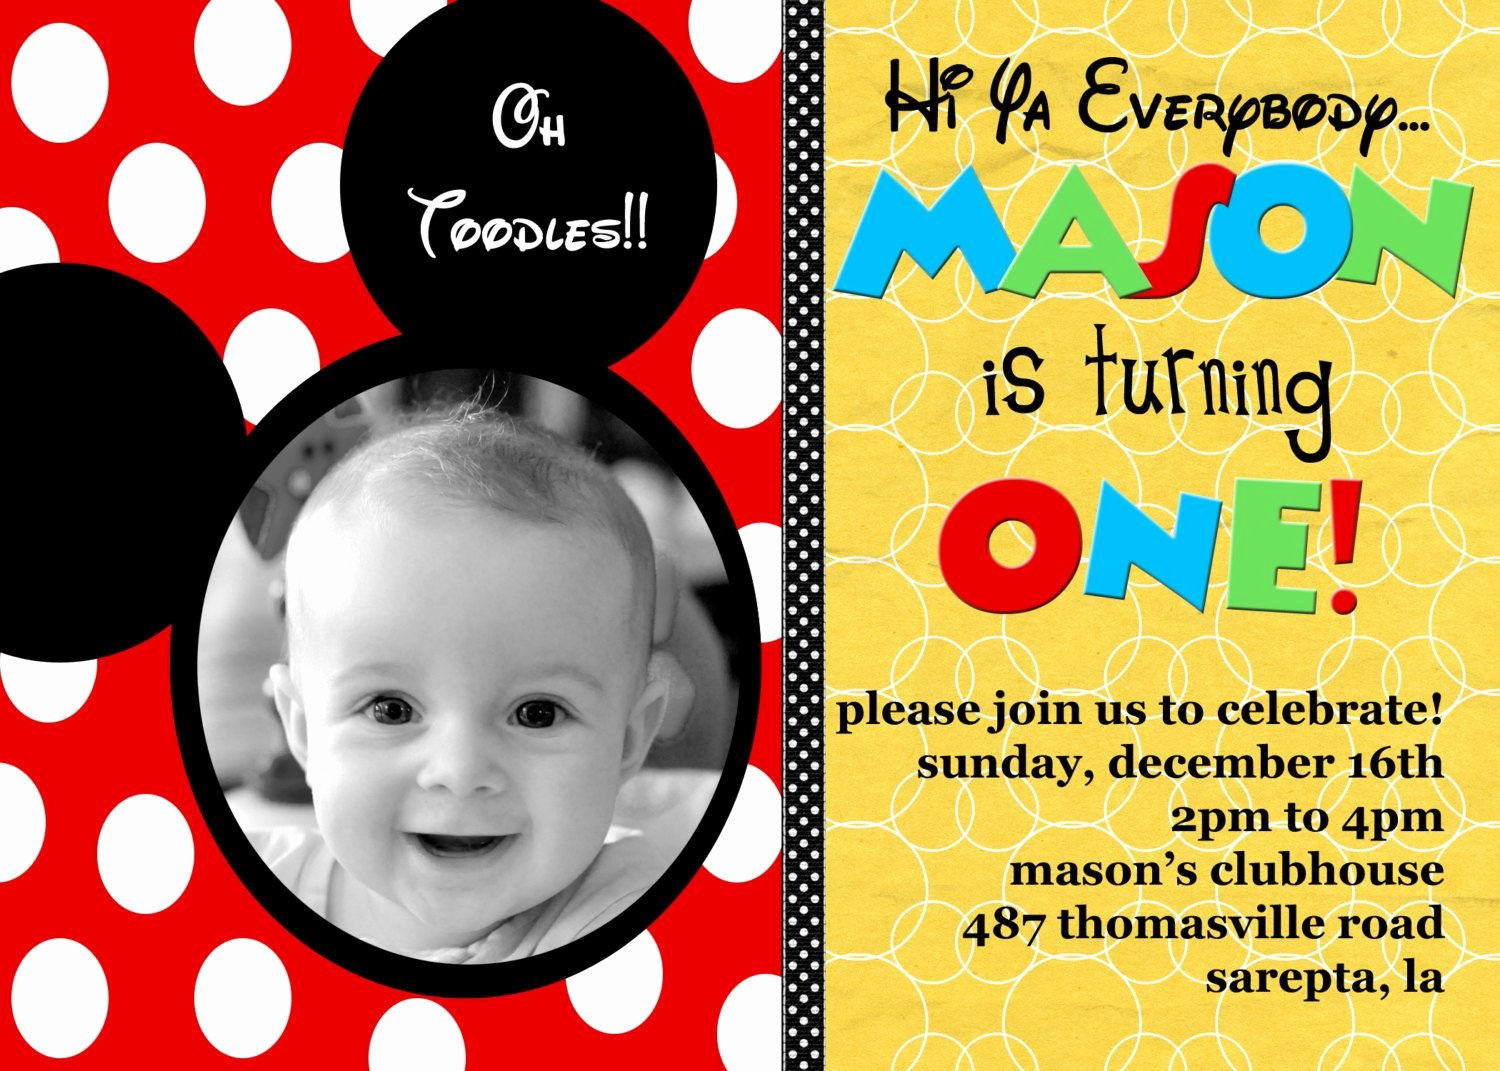 Free Mickey Mouse Invitations Elegant Customized Birthday Invitation Mickey Mouse or by